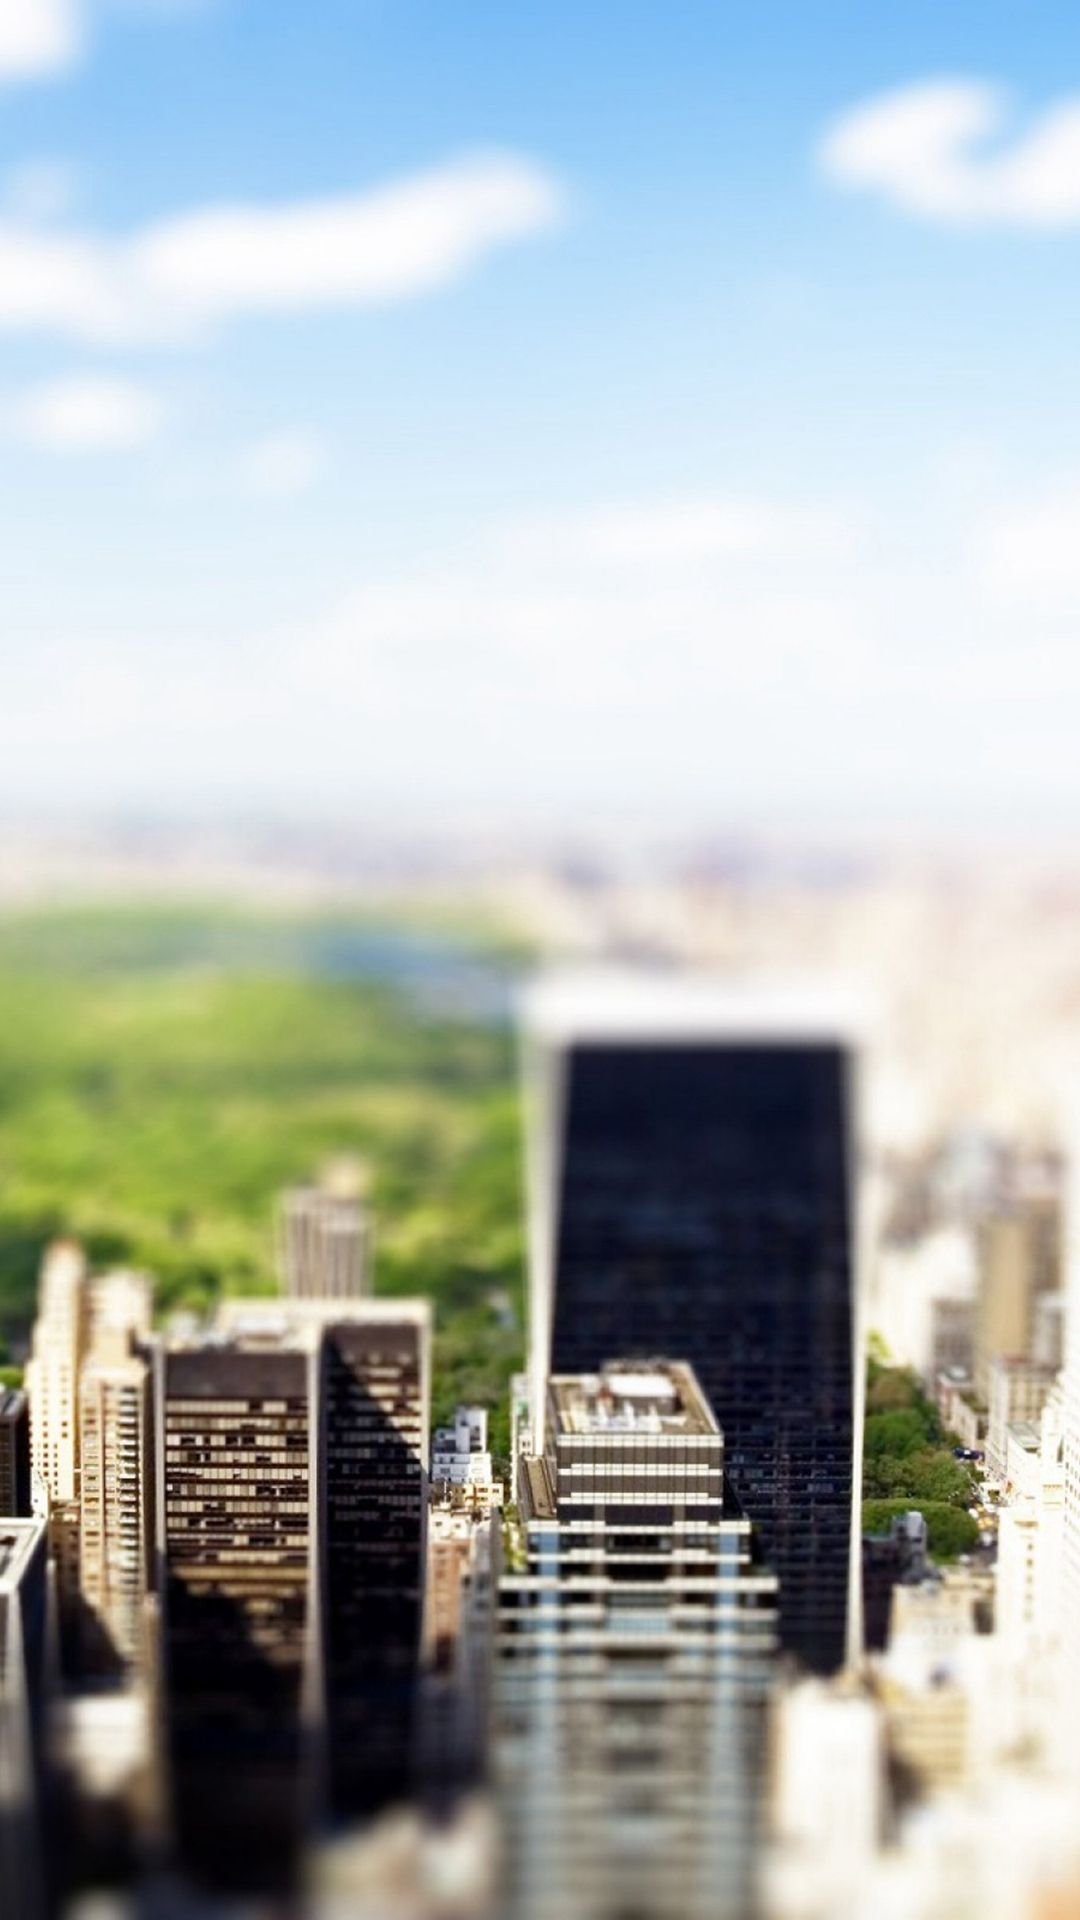 1080x1920 New York Central Park Tilt Shift iPhone 8 Wallpapers Free ...